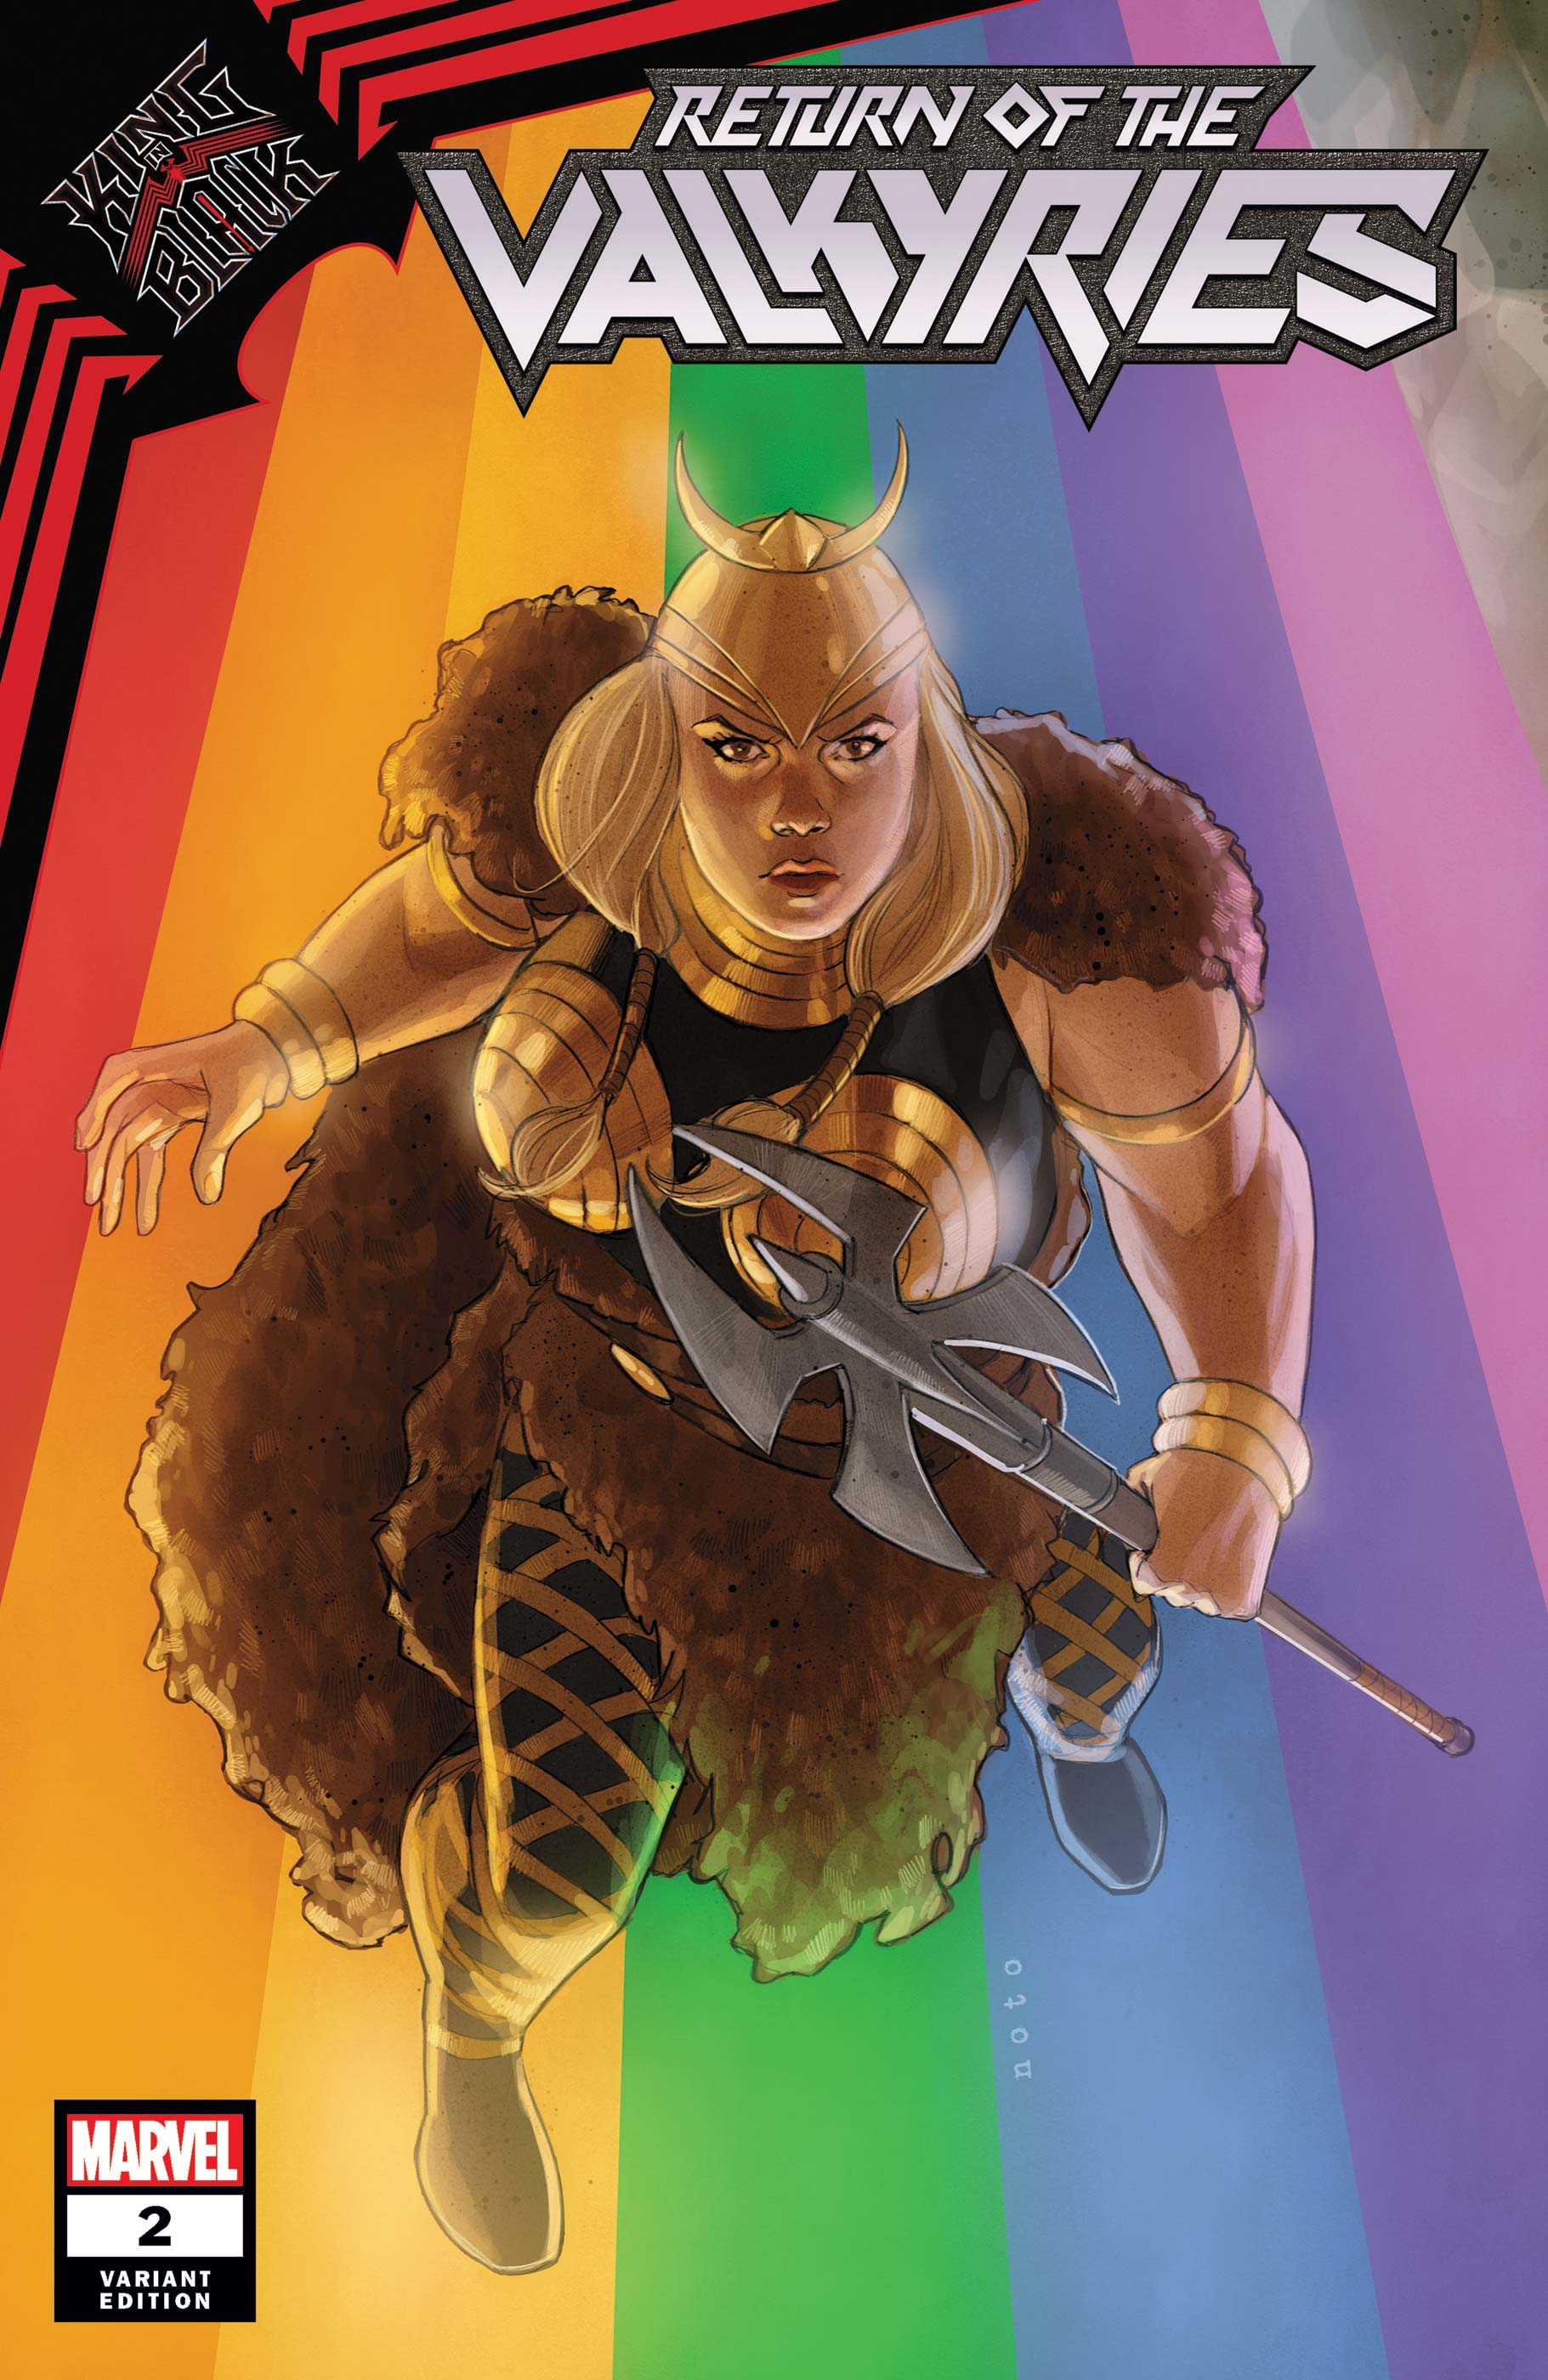 King in Black: Return of the Valkyries #2 Variant Cover by Phil Noto